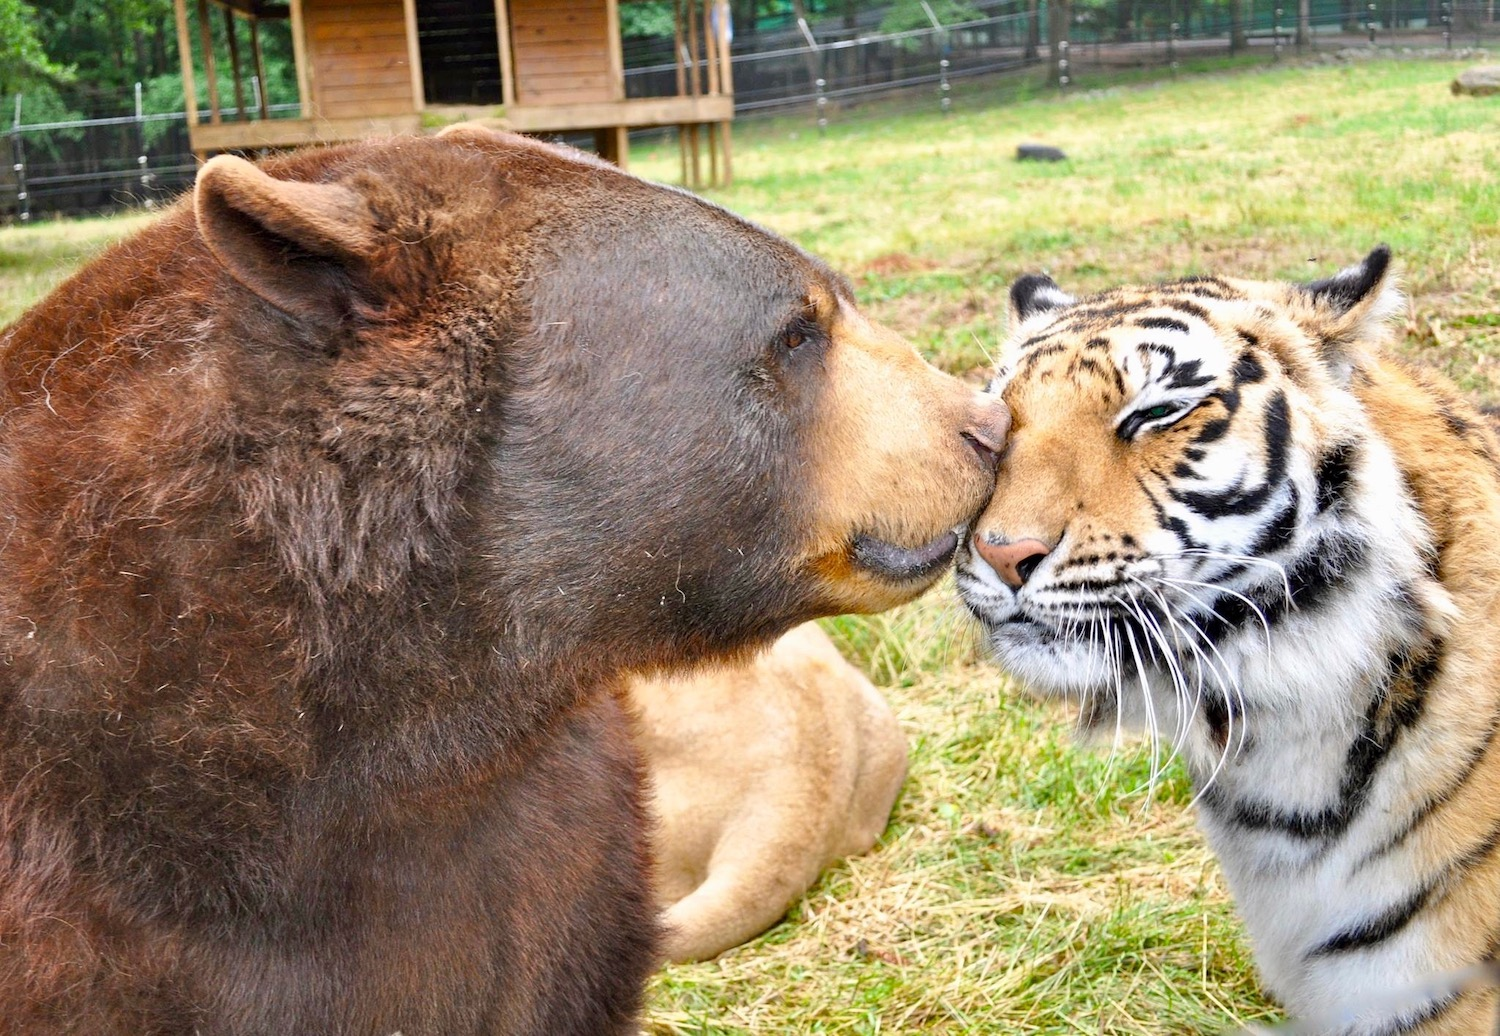 Outdoor fun in Henry County includes rarely seen exotic animal friendships.